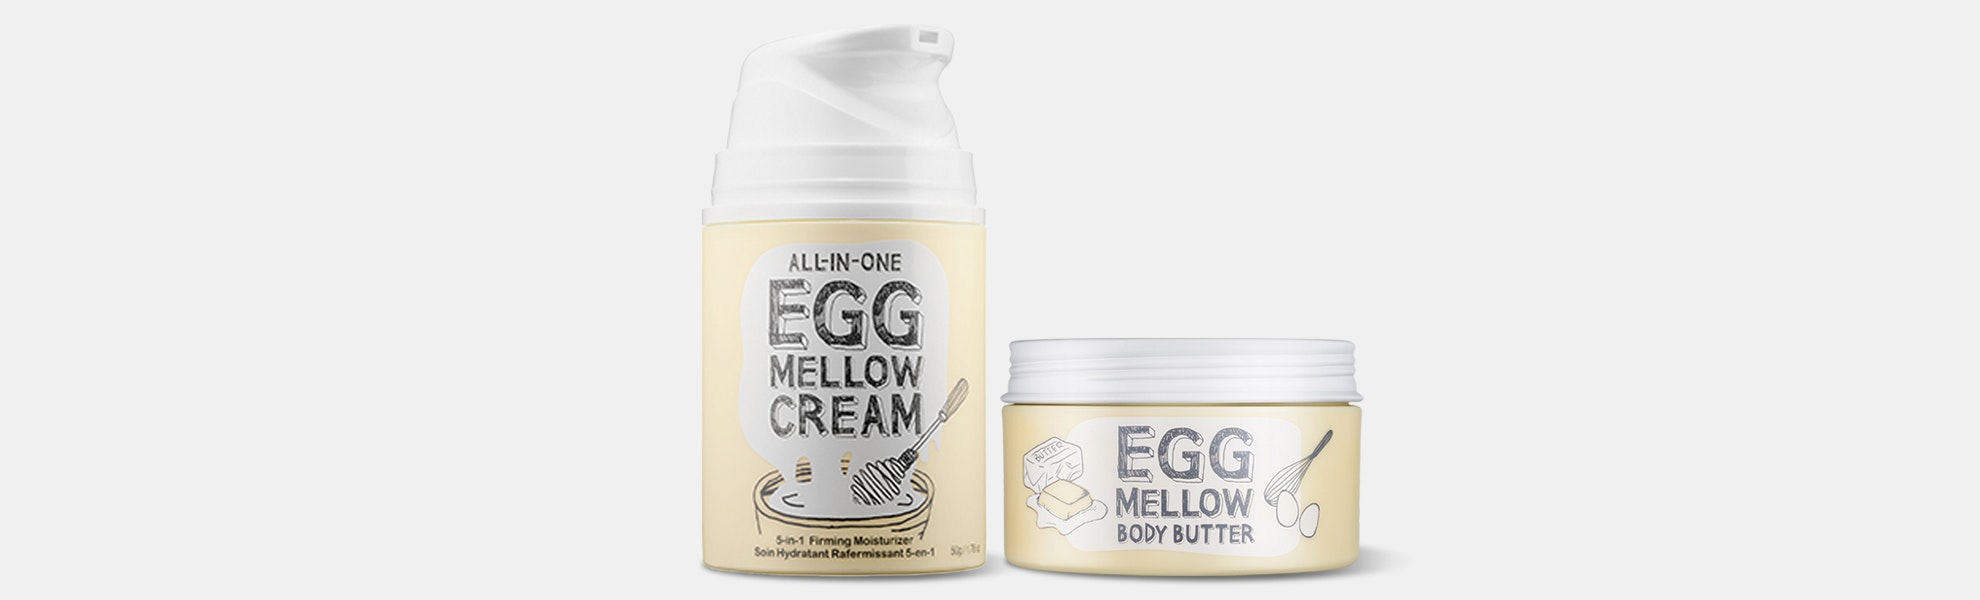 Too Cool for School Egg Mellow Body Butter & Cream